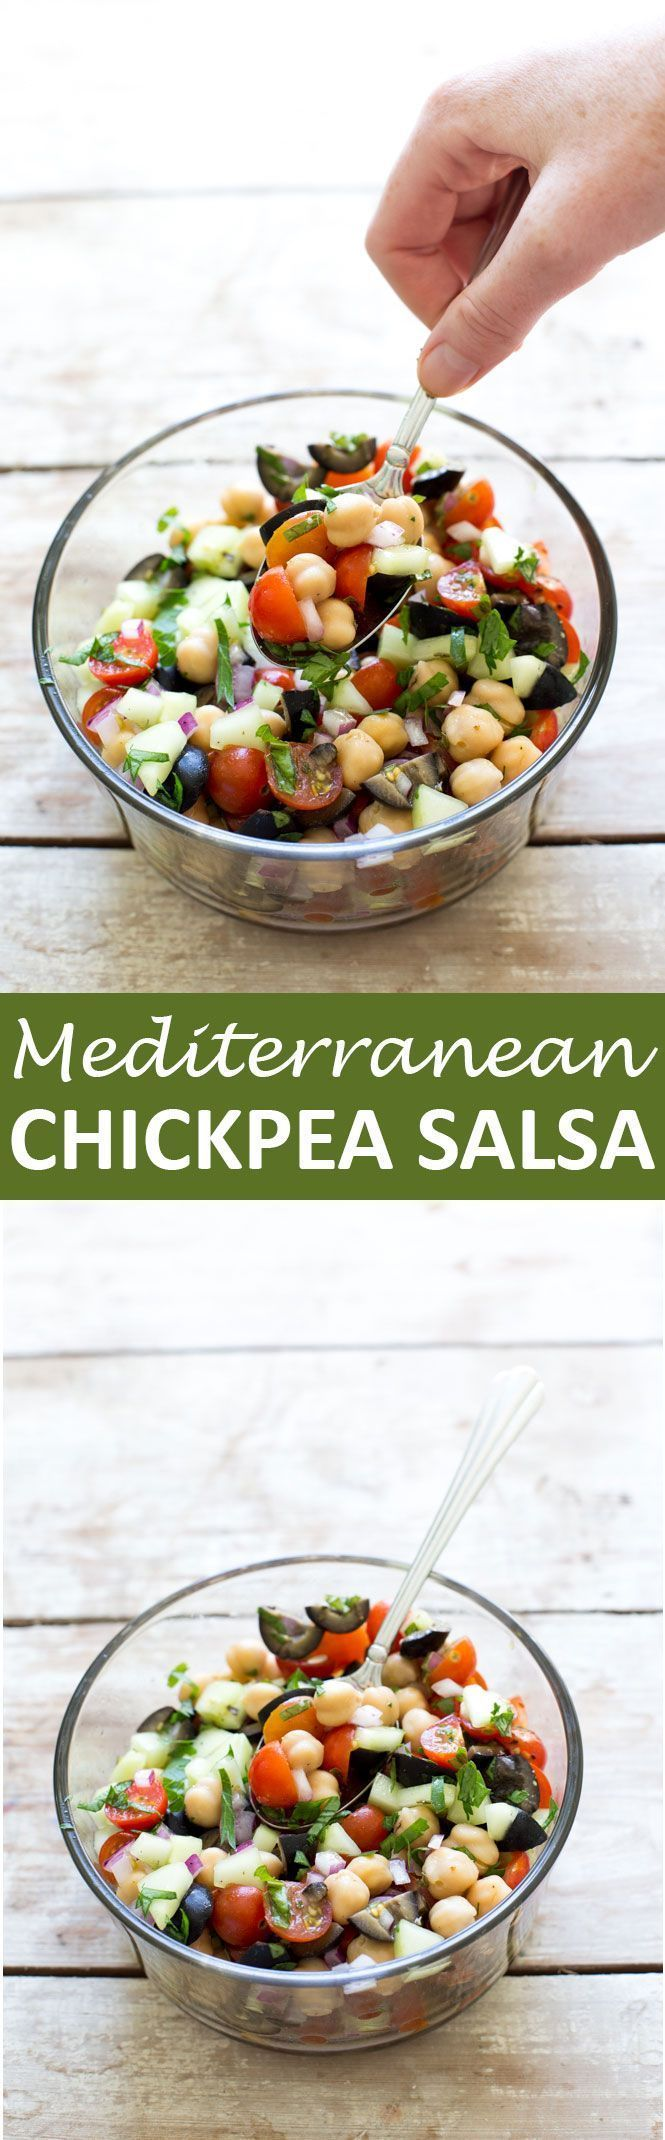 Super Easy Mediterranean Salsa. Light, healthy and loaded with tons of flavor. Serve as an appetizer or side dish! | chefsavvy.com #recipe #mediterranean #salsa #appetizer #side